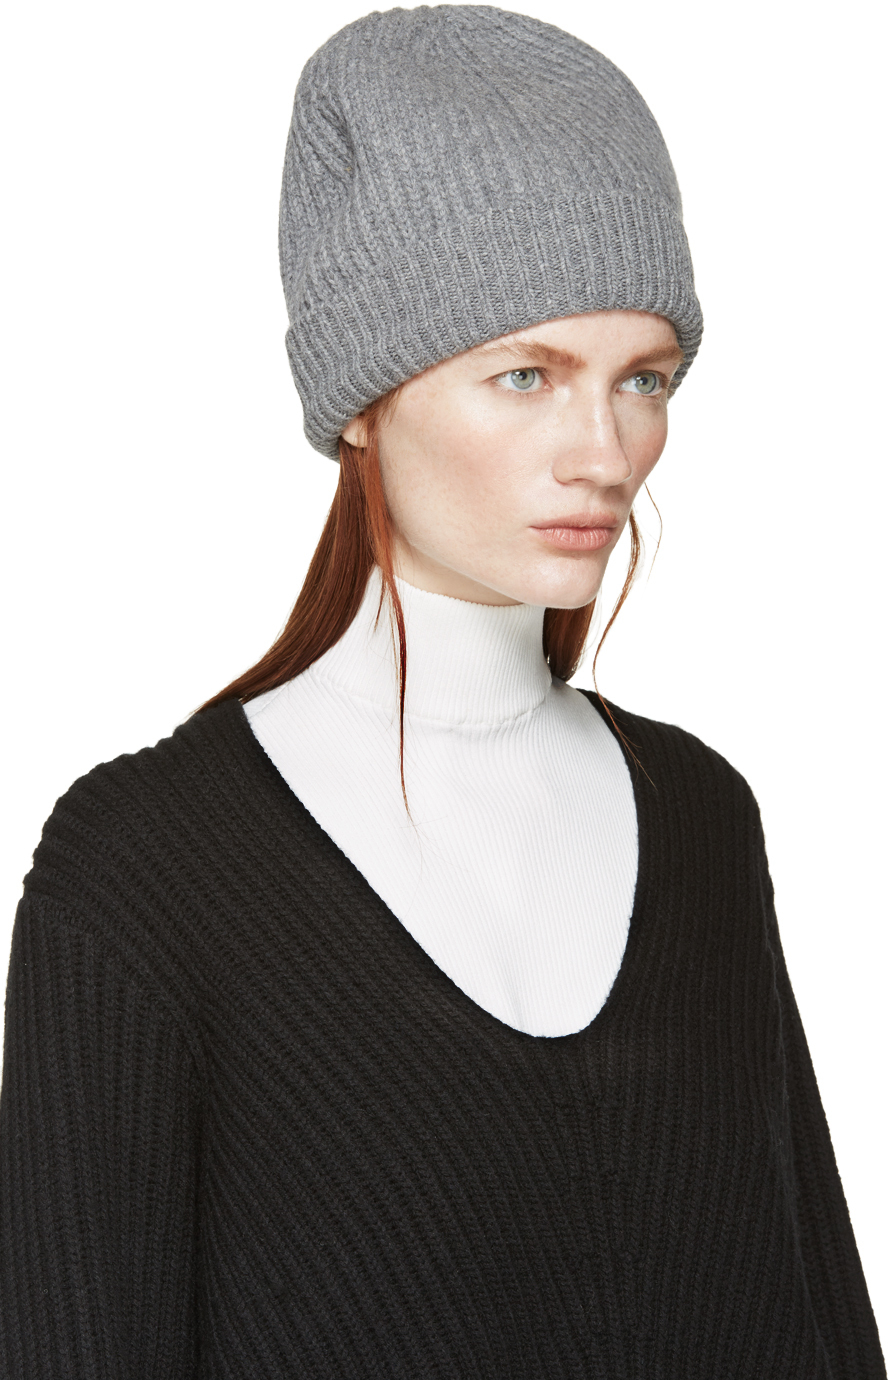 Lyst - Acne Studios Grey Wool Canning Beanie in Gray e617afdf7619